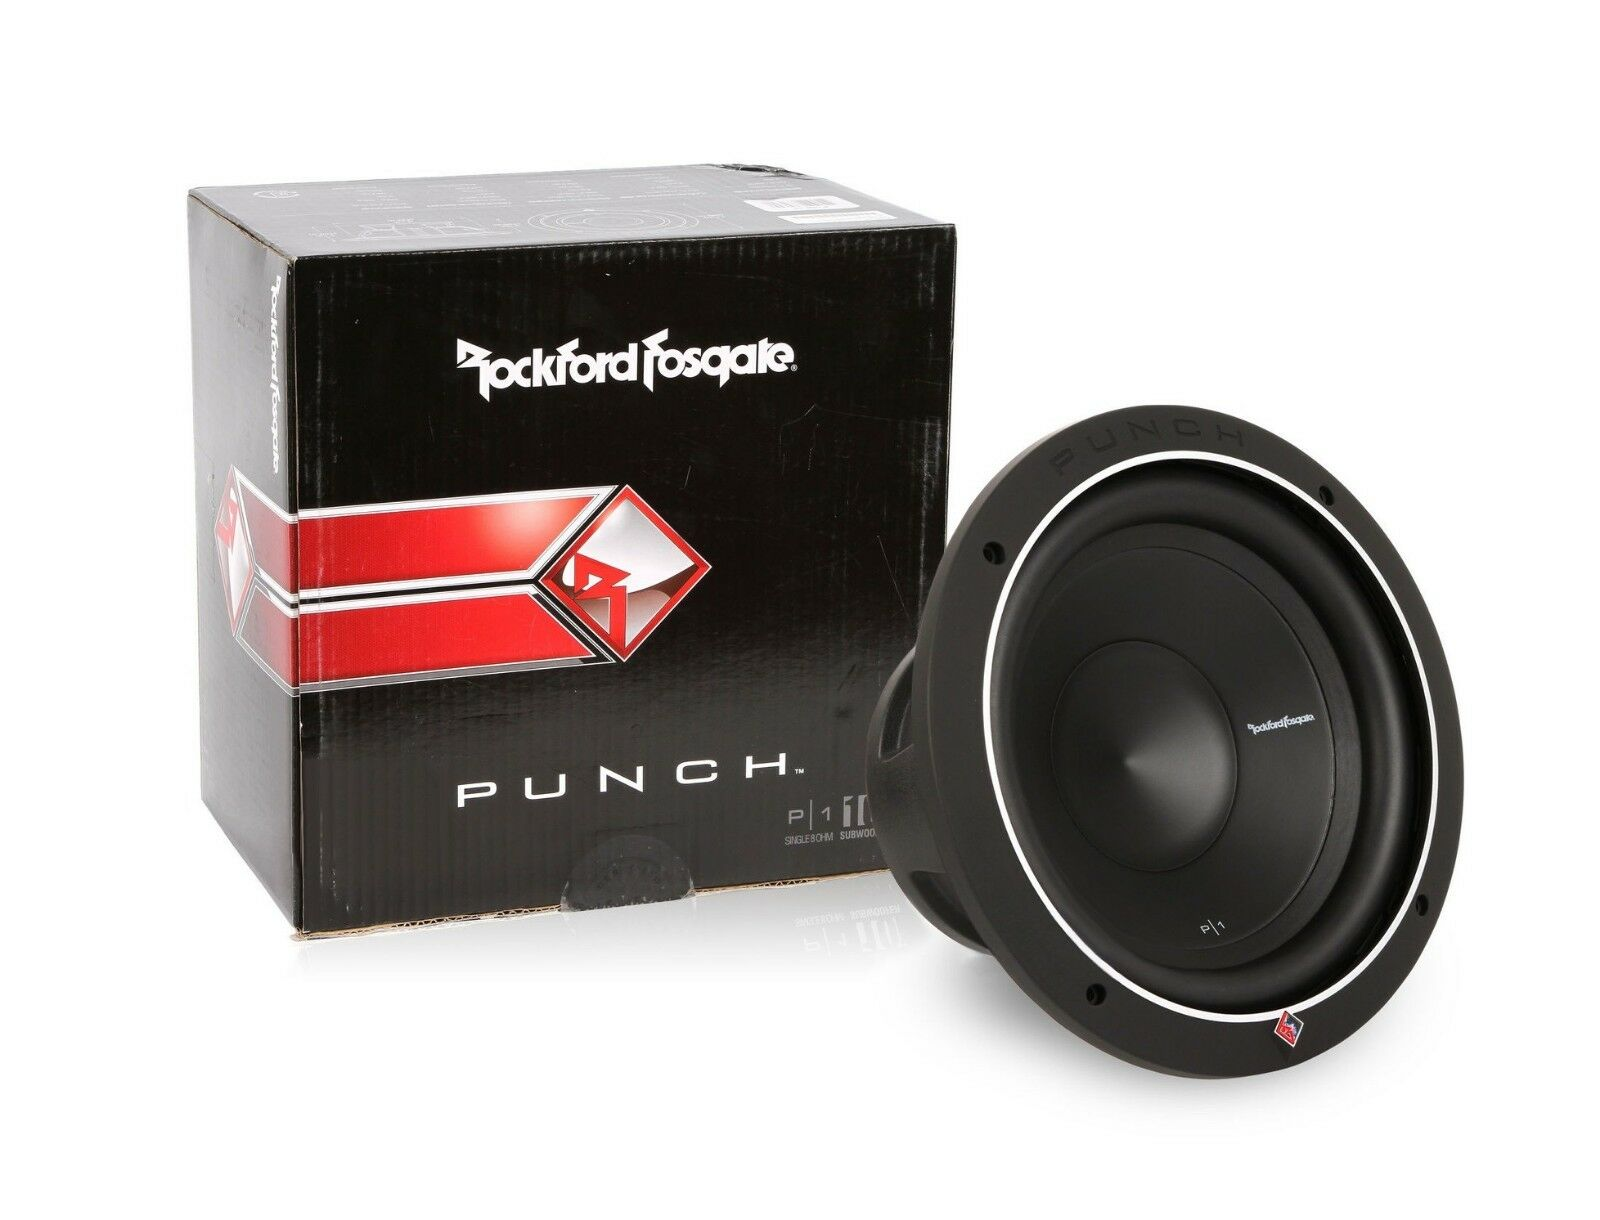 Rockford Fosgate P1s4 12 500w Punch P1 4 Ohm Svc Subwoofer Ebay R600x5 600w 5 Channel Amplifier With Wiring Kit Cookies And Adchoice Norton Secured Powered By Verisign